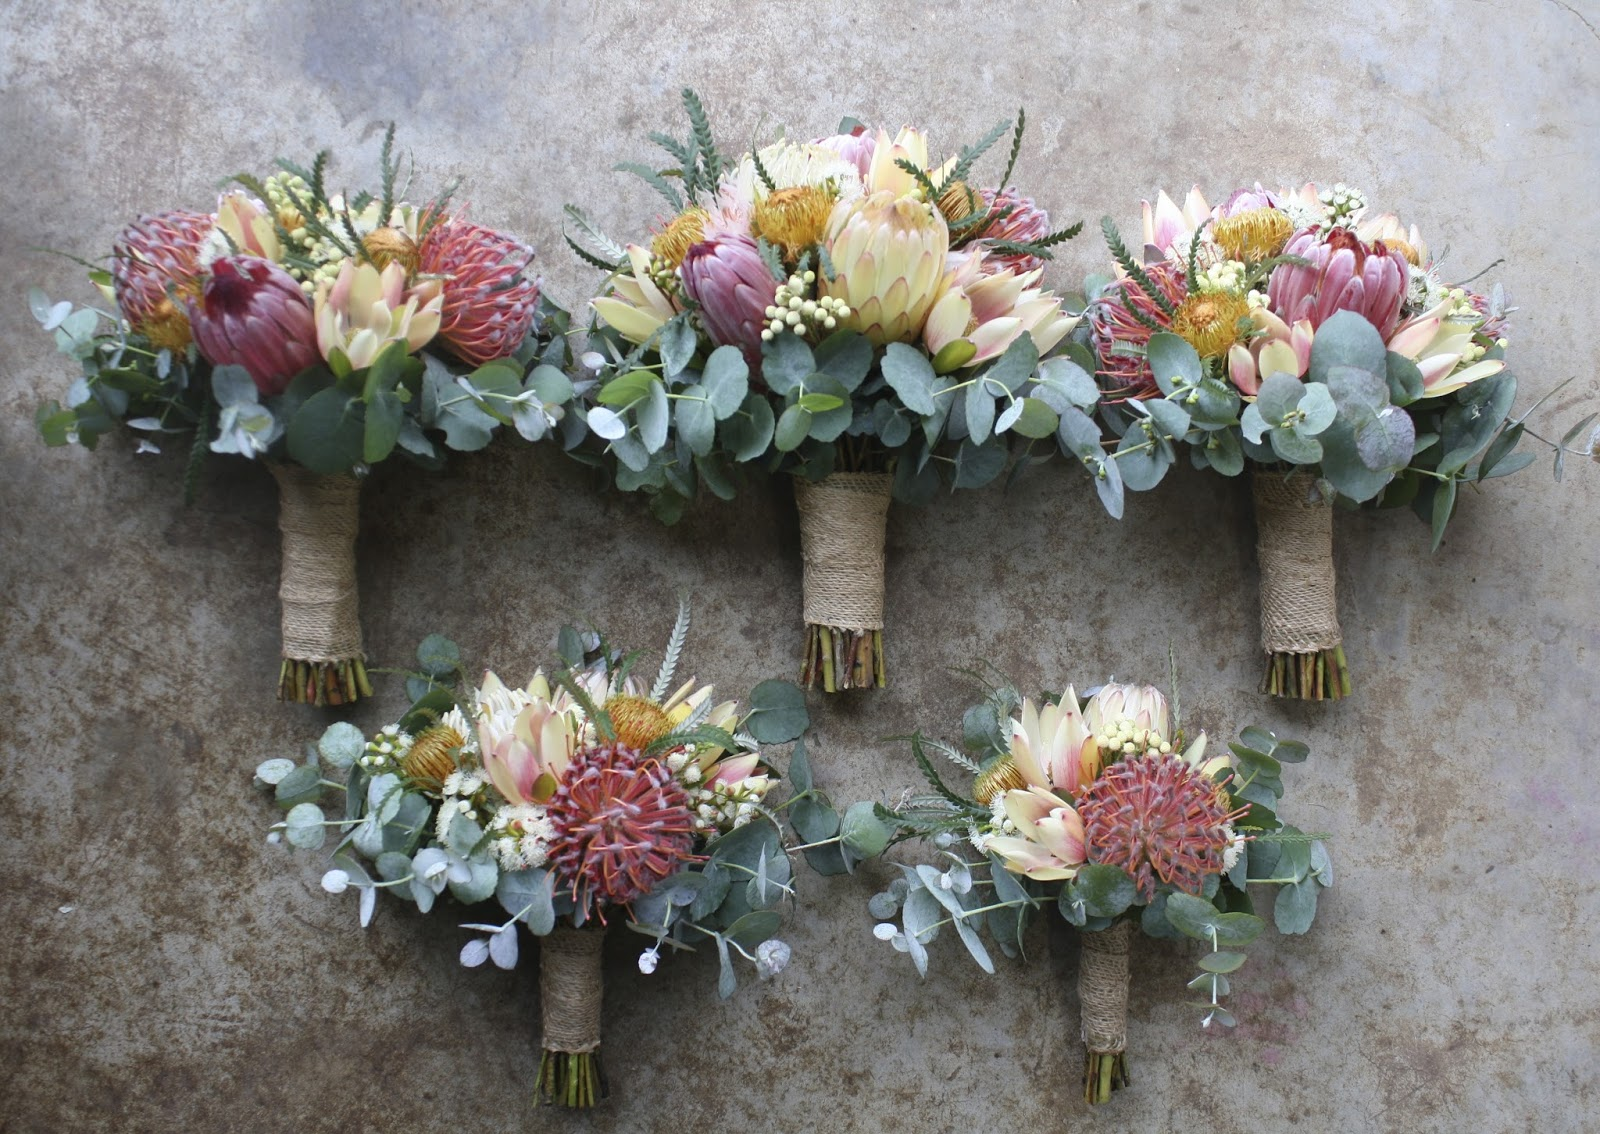 November wedding flowers in season best fall wedding ideas on my protea white ice were just beginning to flower well for the first season and they mightylinksfo